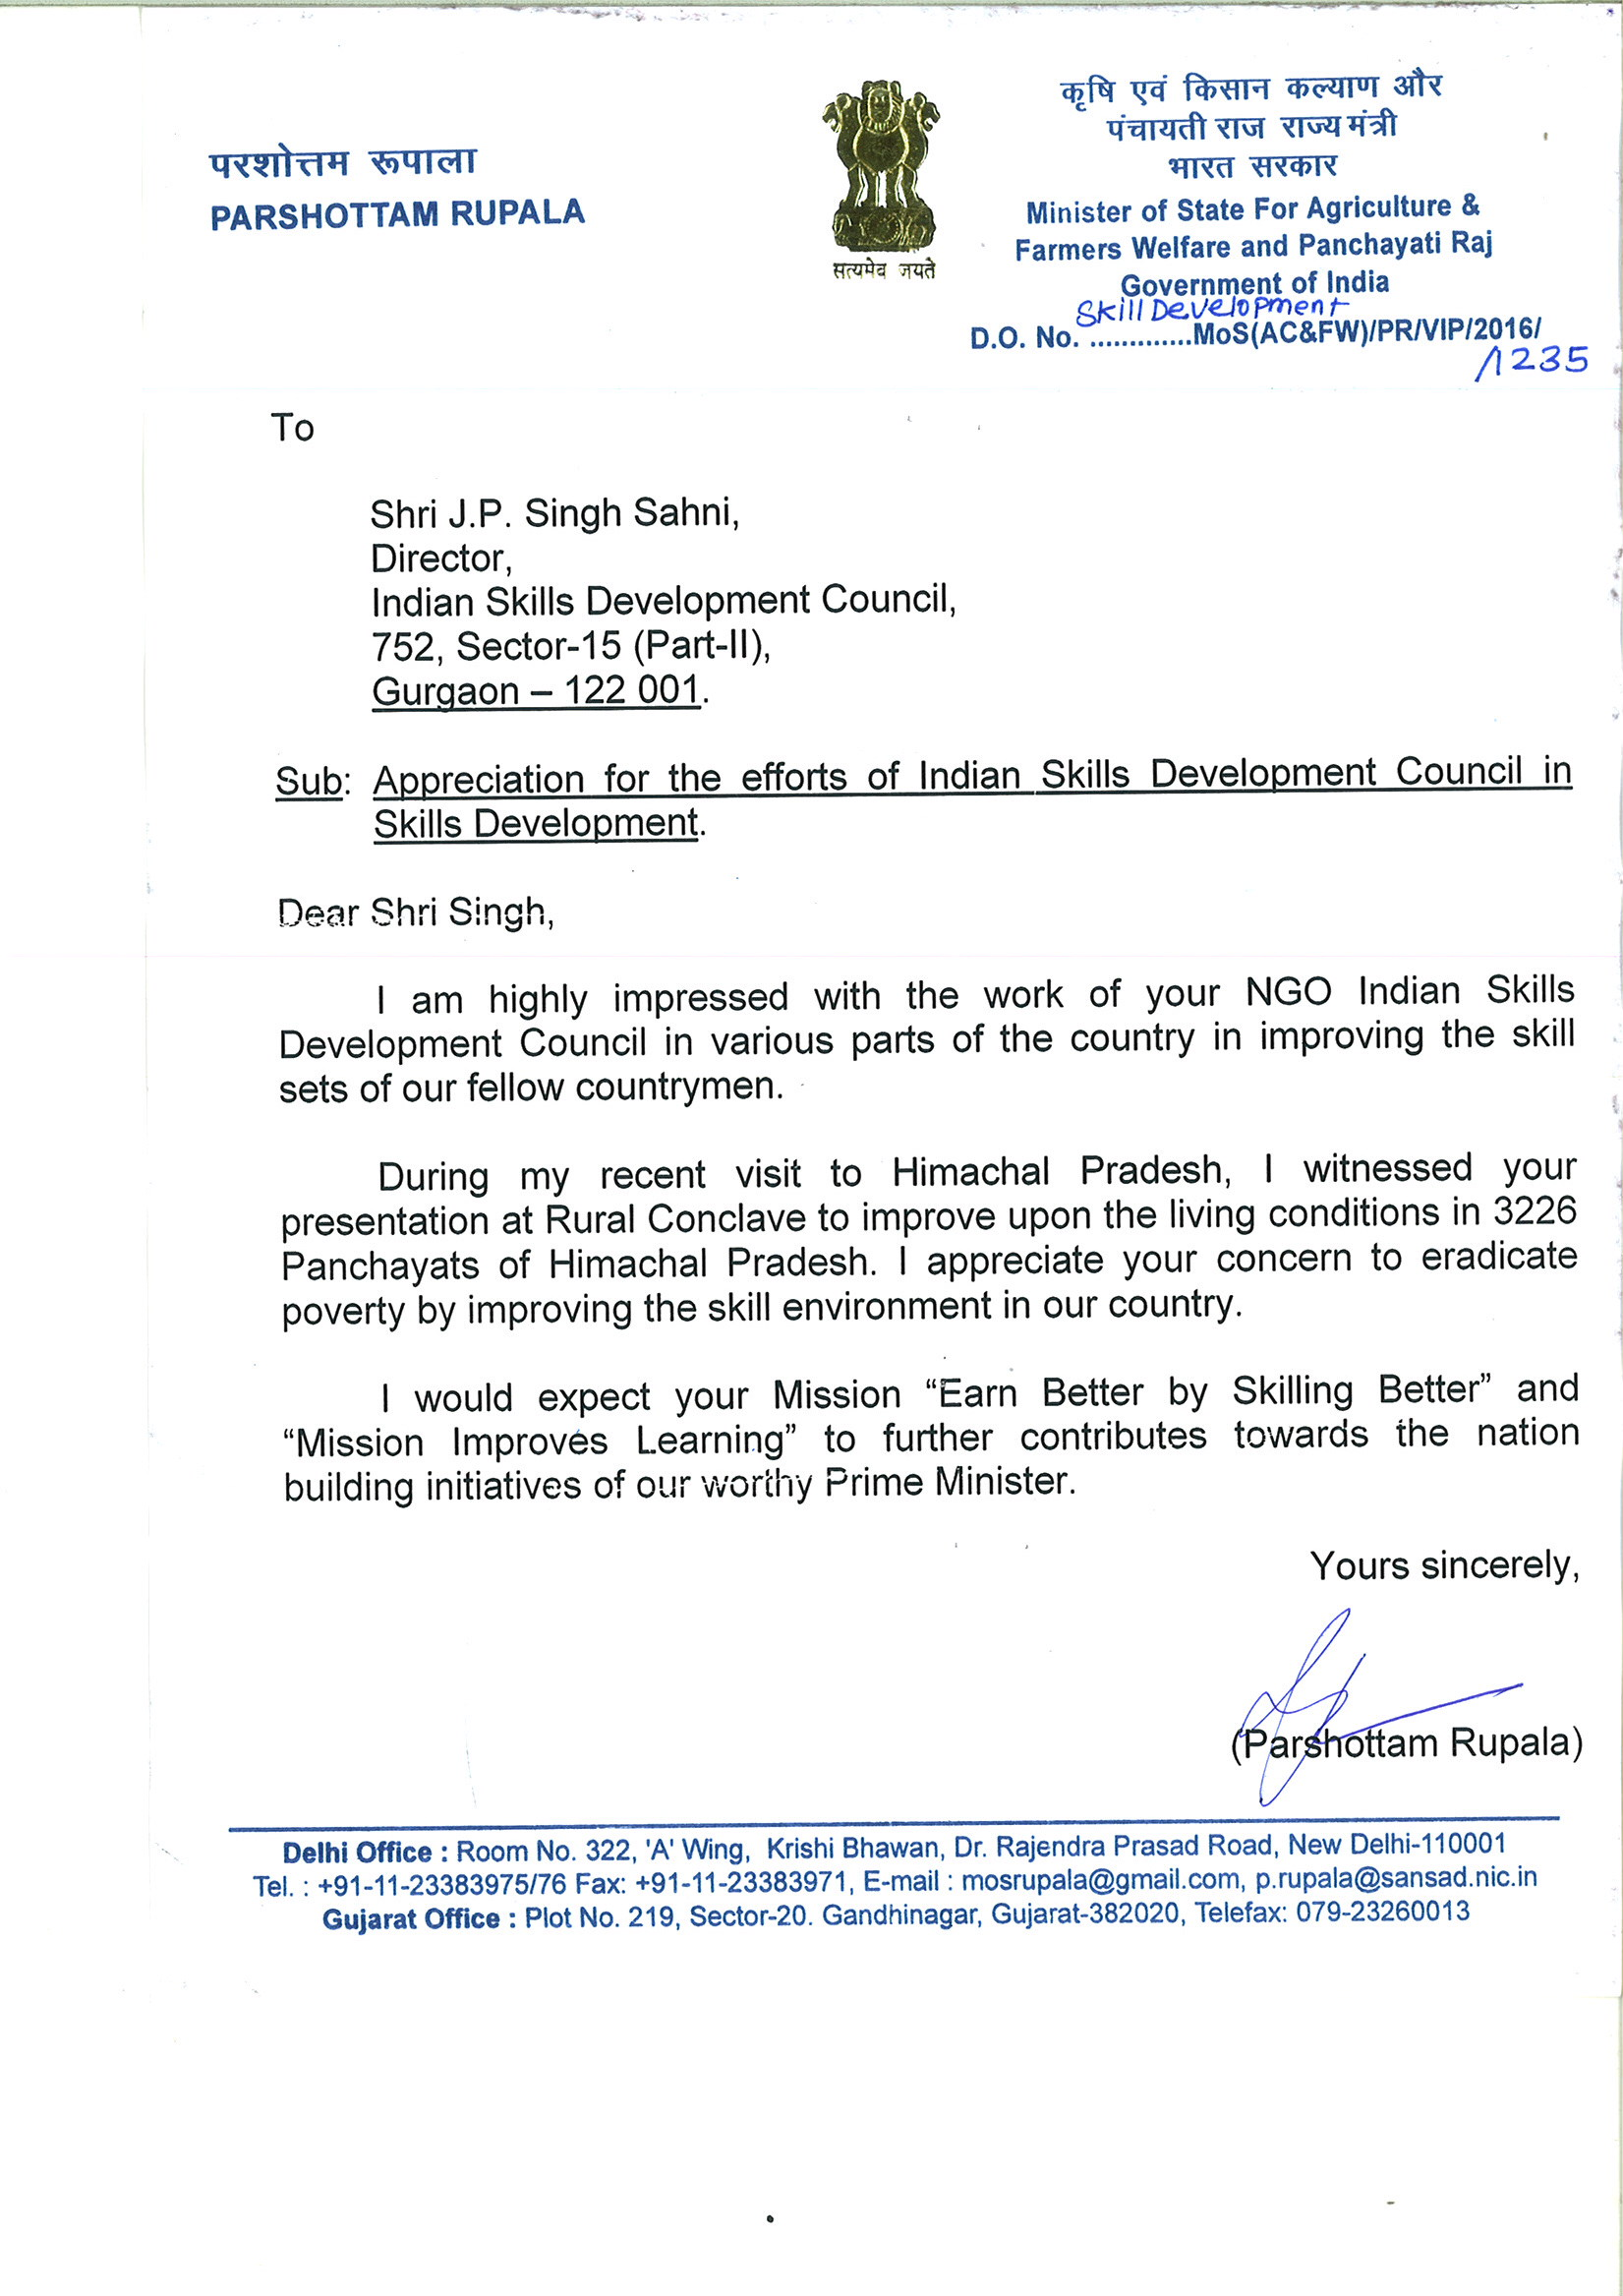 Letter of Support to Indian Skills Development Council & Mother India Crochet Queens